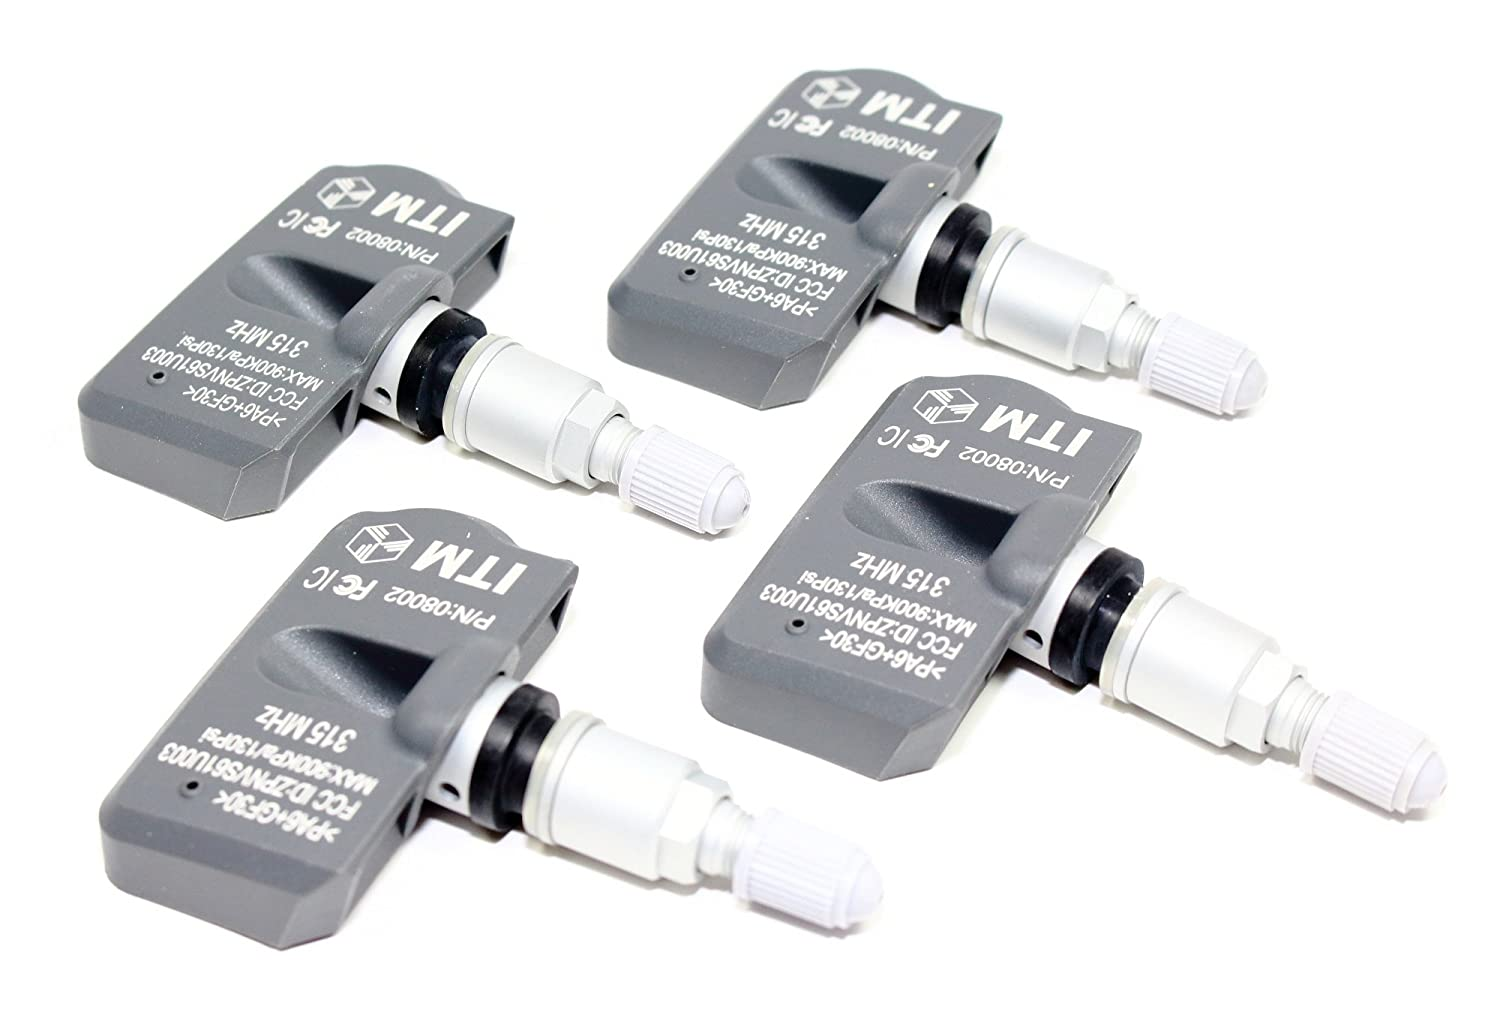 ITM Set of 4 315mhz TPMS Tire Pressure Sensors 2010 2011 2012 2013 2014 2015 2016 2017 Toyota 4 Runner SR TRD Pro SR5 Limited Replacement